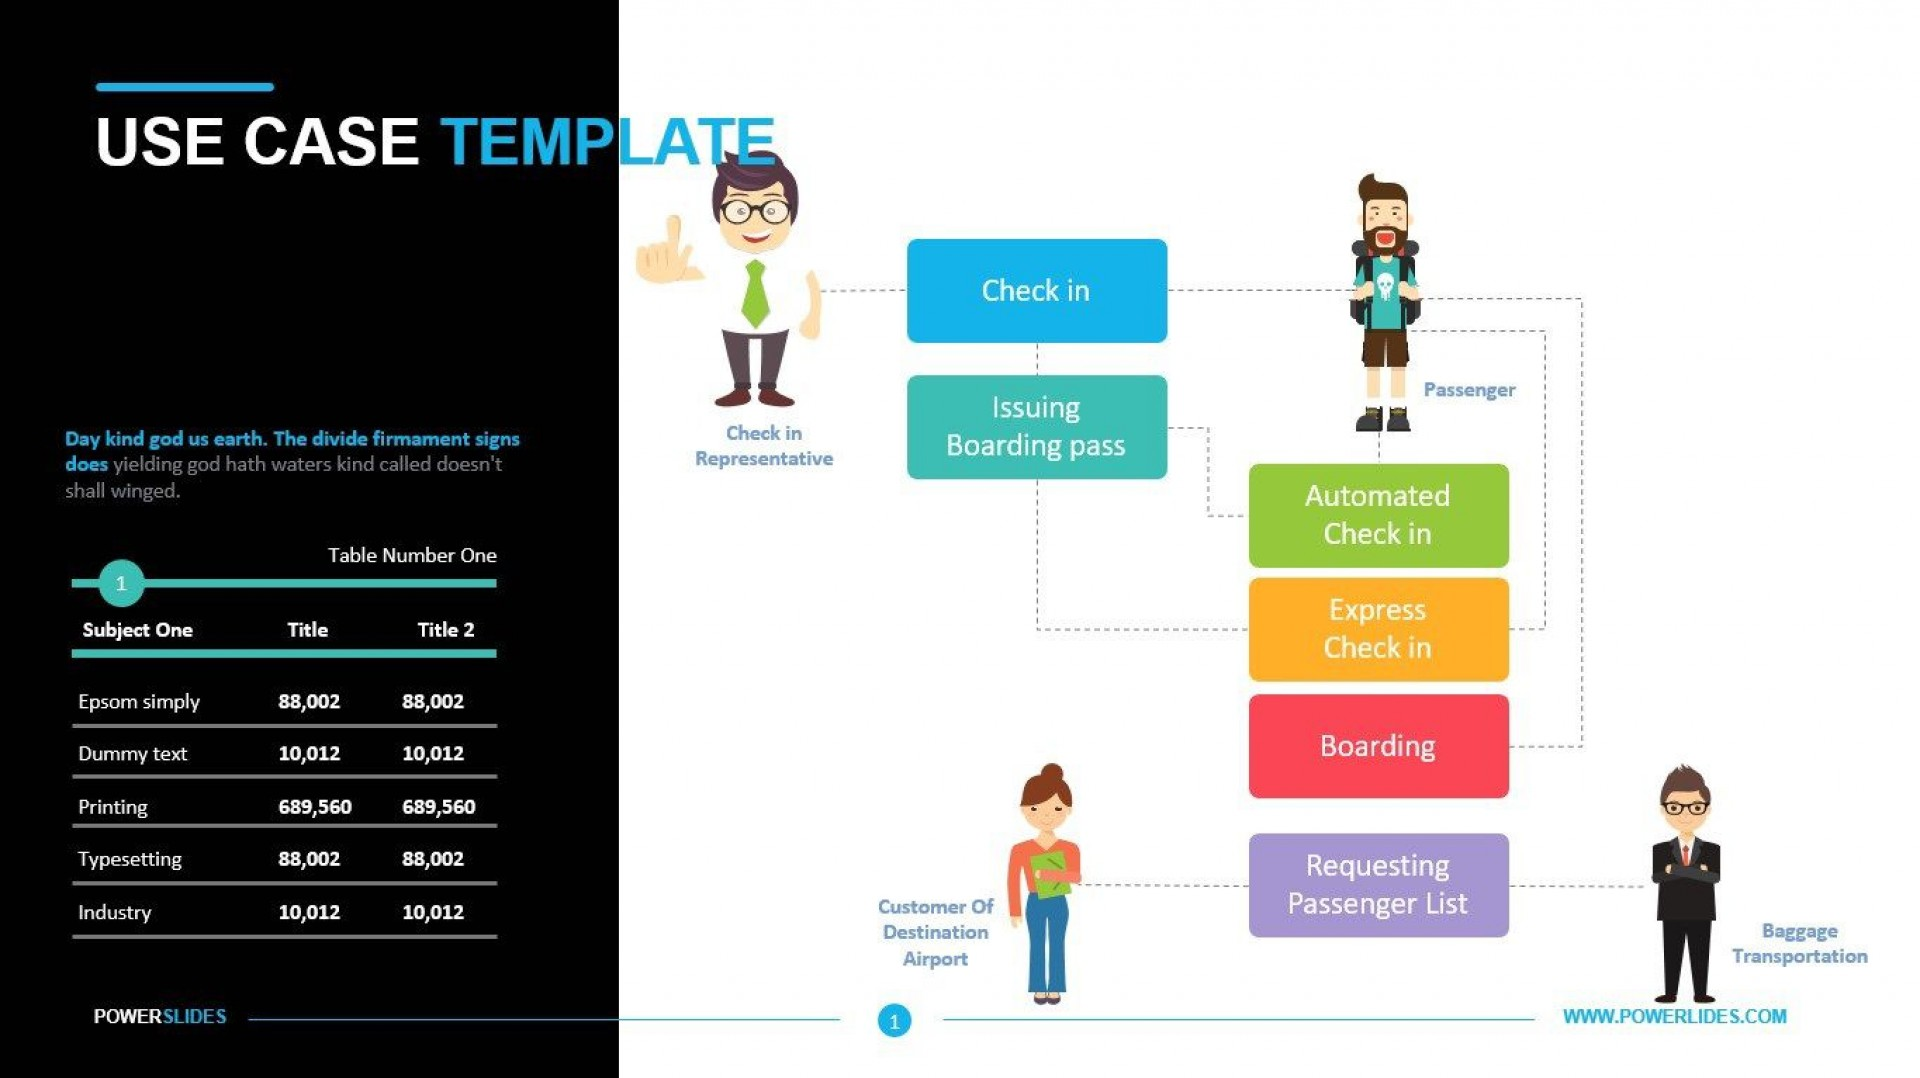 005 Beautiful Use Case Diagram Template Free High Resolution 1920